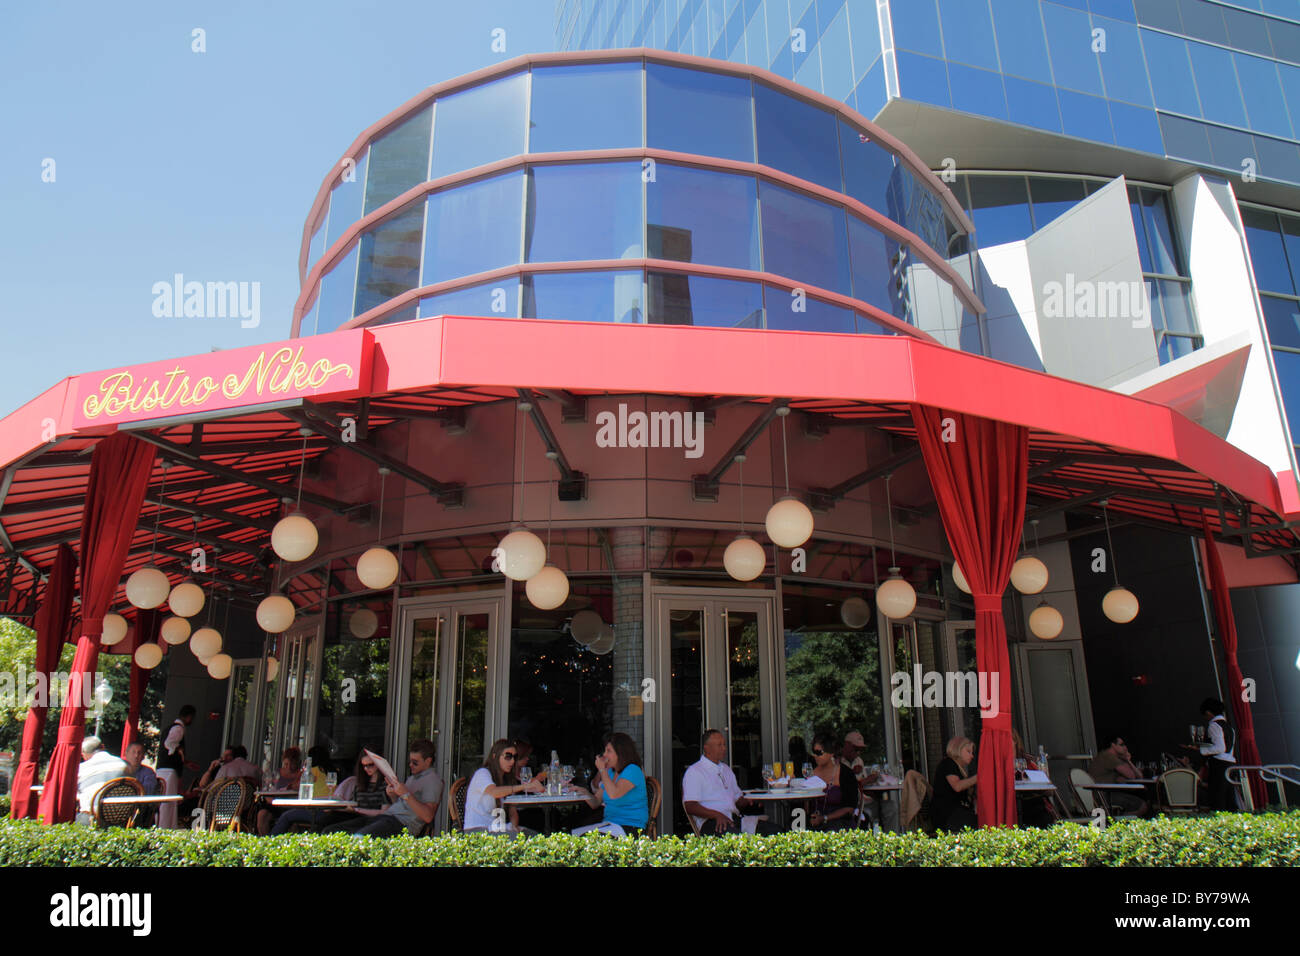 Restaurant Restaurants Food Dine Dining Eating Out Casual Cafe Cafes ...